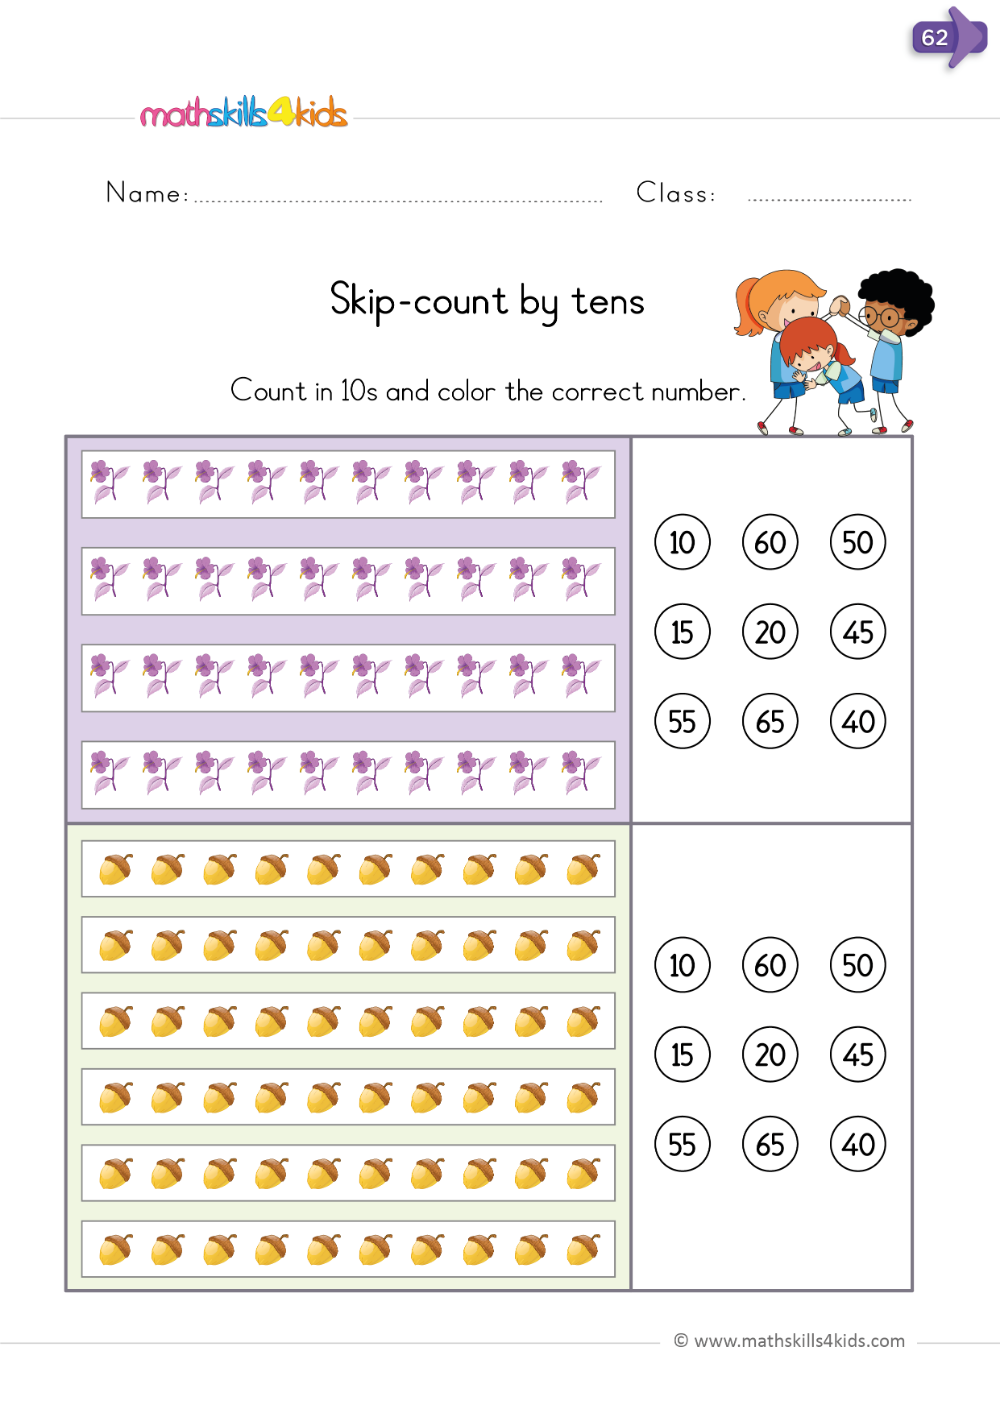 Skip Count By Tens Counting Worksheets For Kindergarten Skip Counting Worksheets Kindergarten Worksheets [ 1413 x 1000 Pixel ]